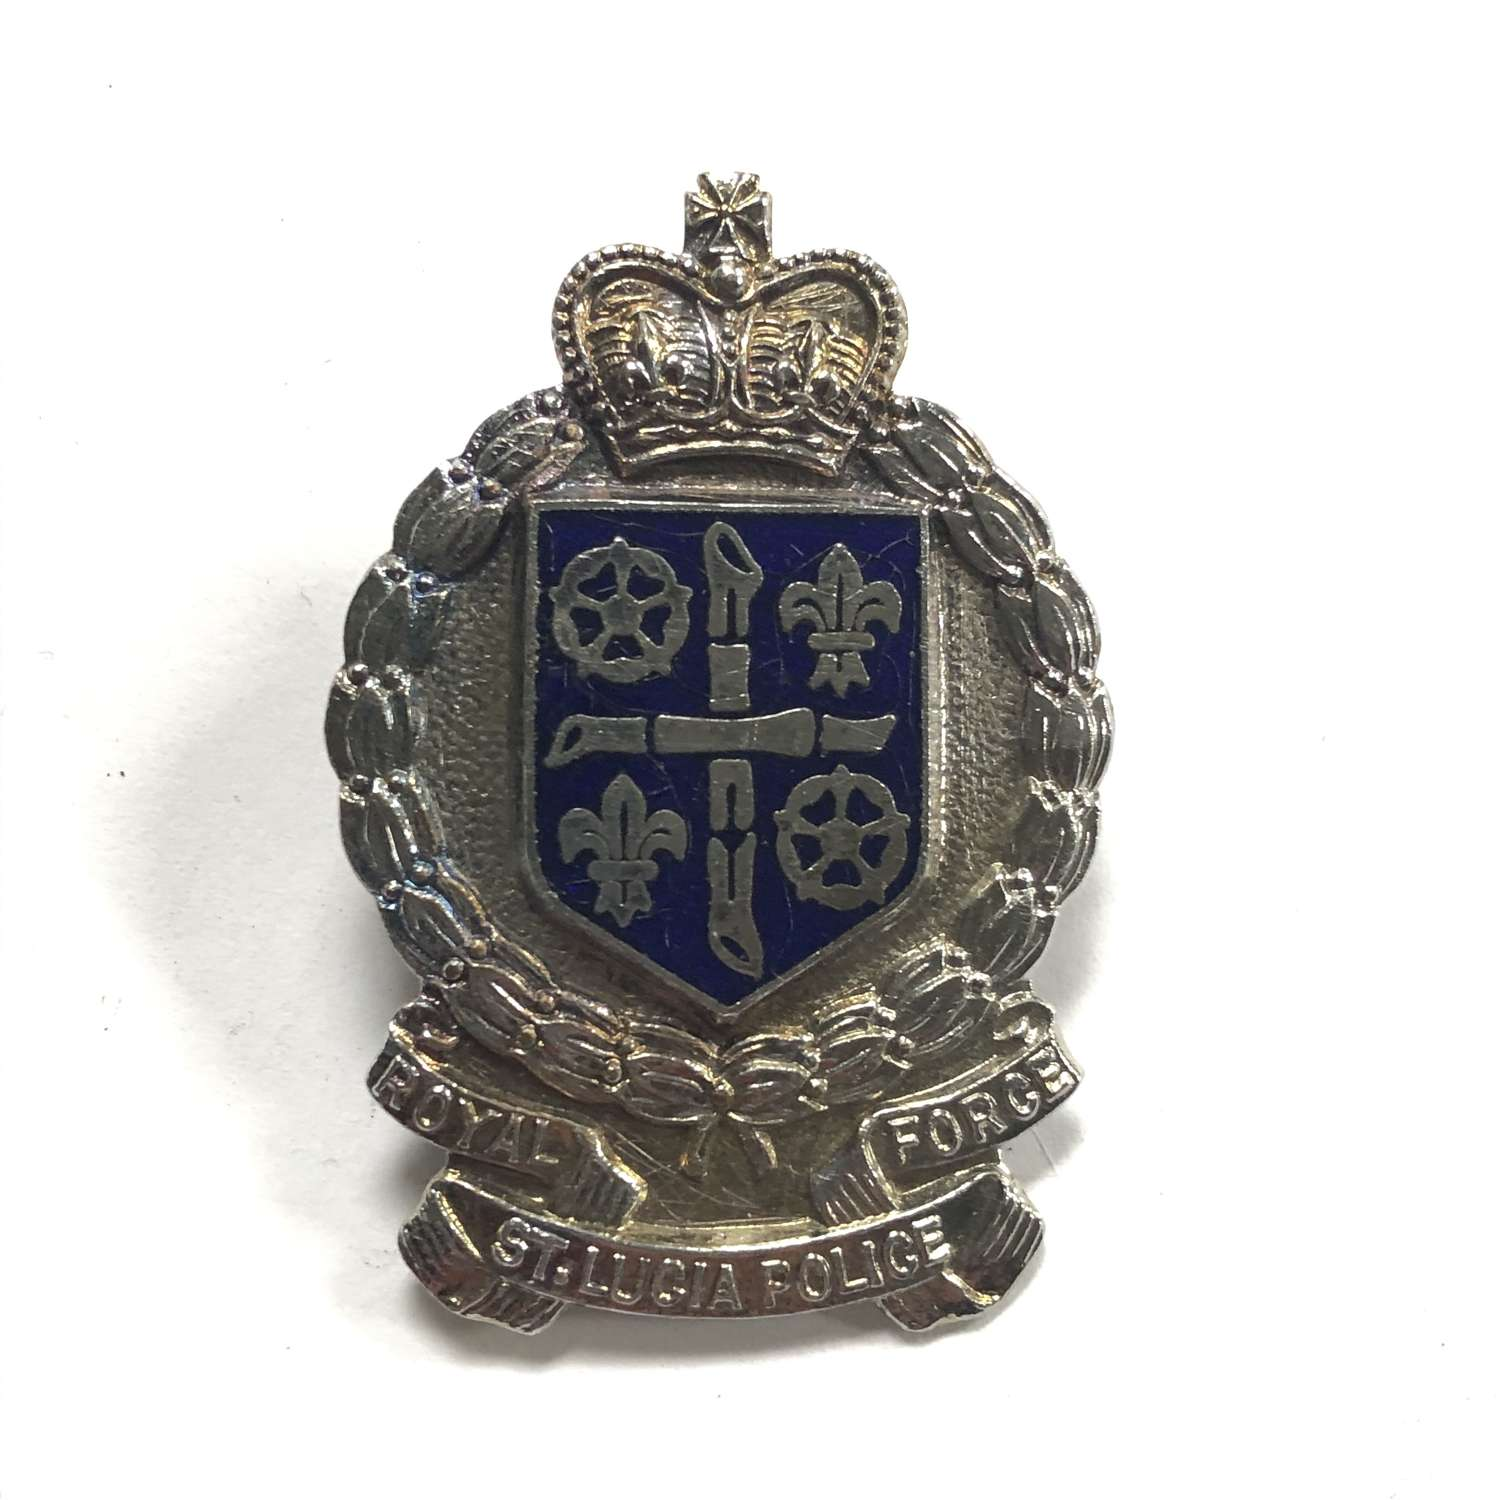 Royal St. Lucia Police Force cap badge